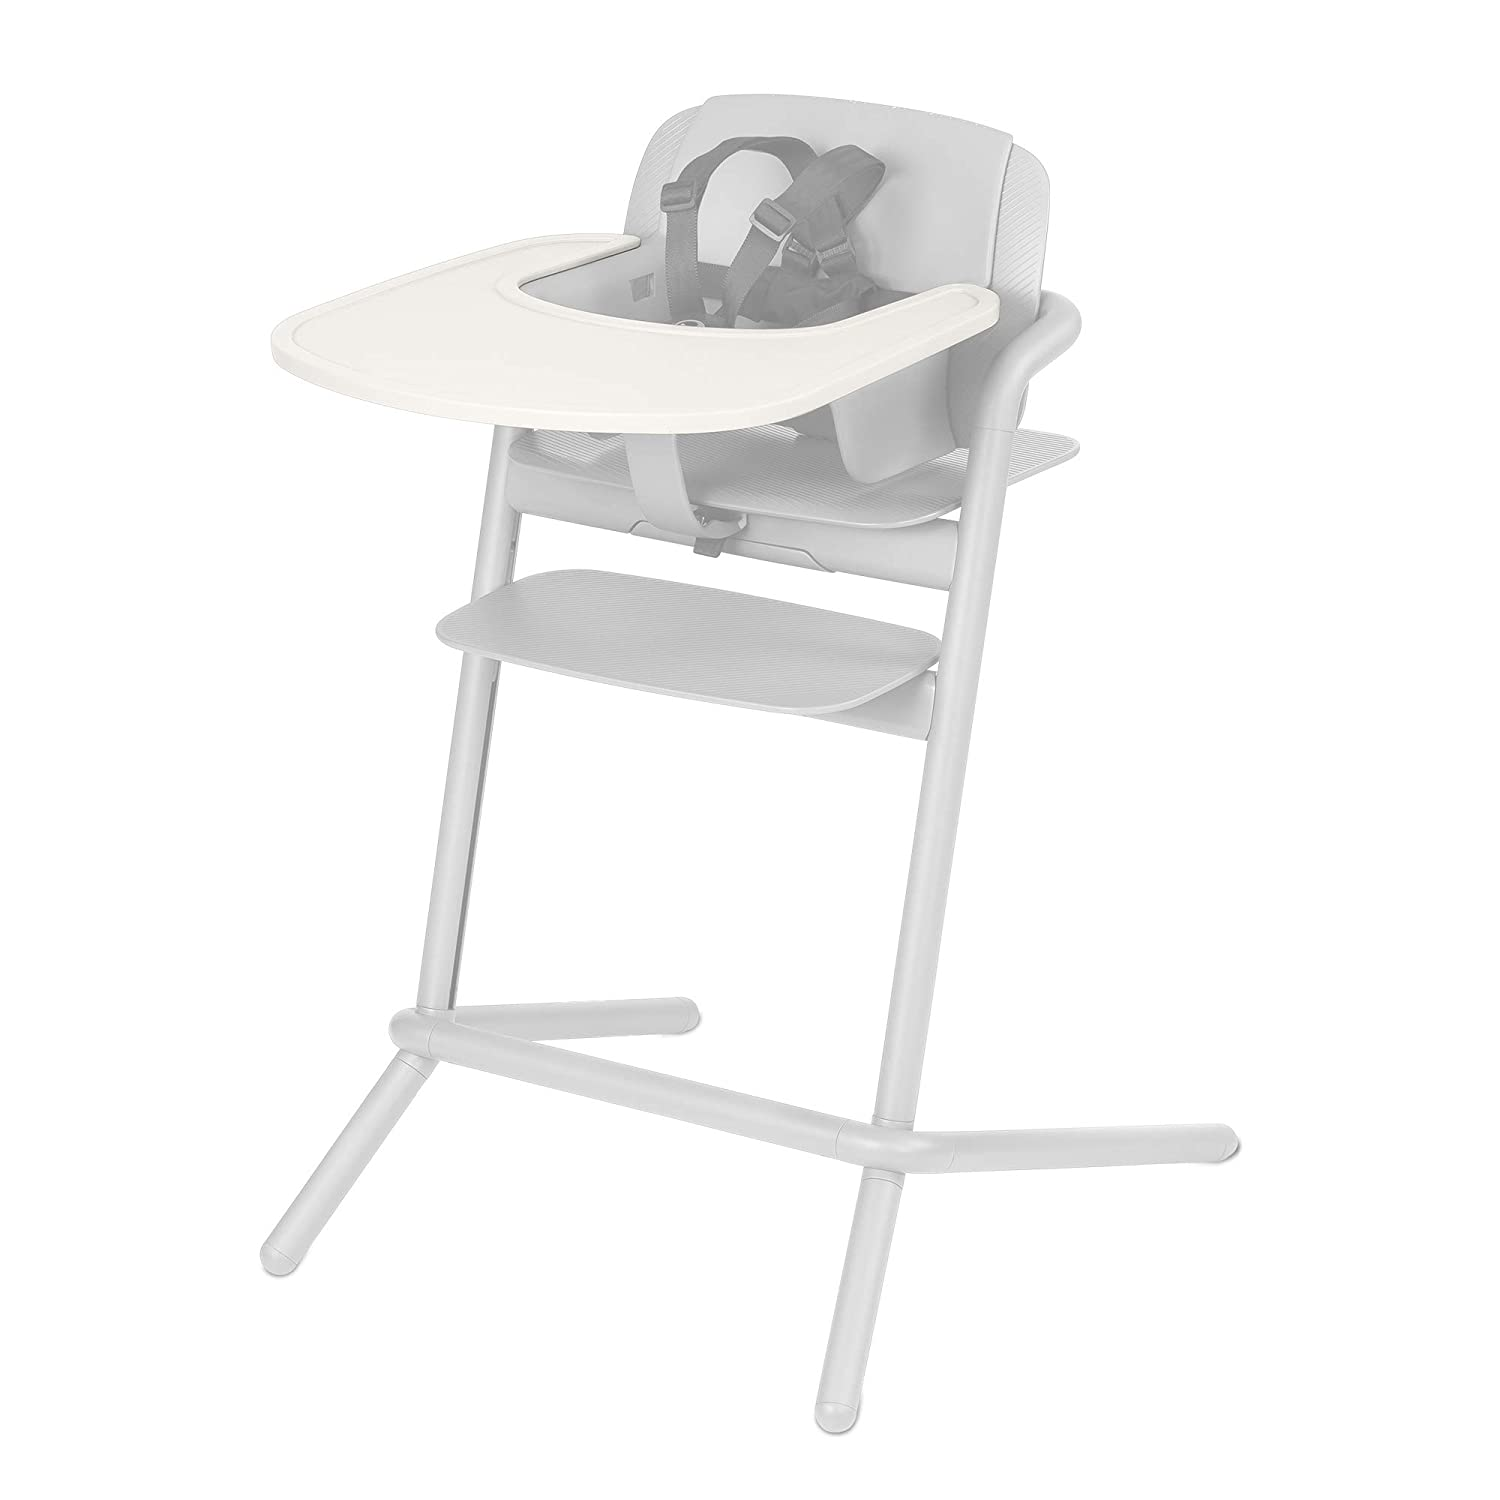 geeignet f/ür LEMO Chair /& LEMO Chair Wood ! Cybex Lemo Tray Tablett Interieur Kollektion porcelain white